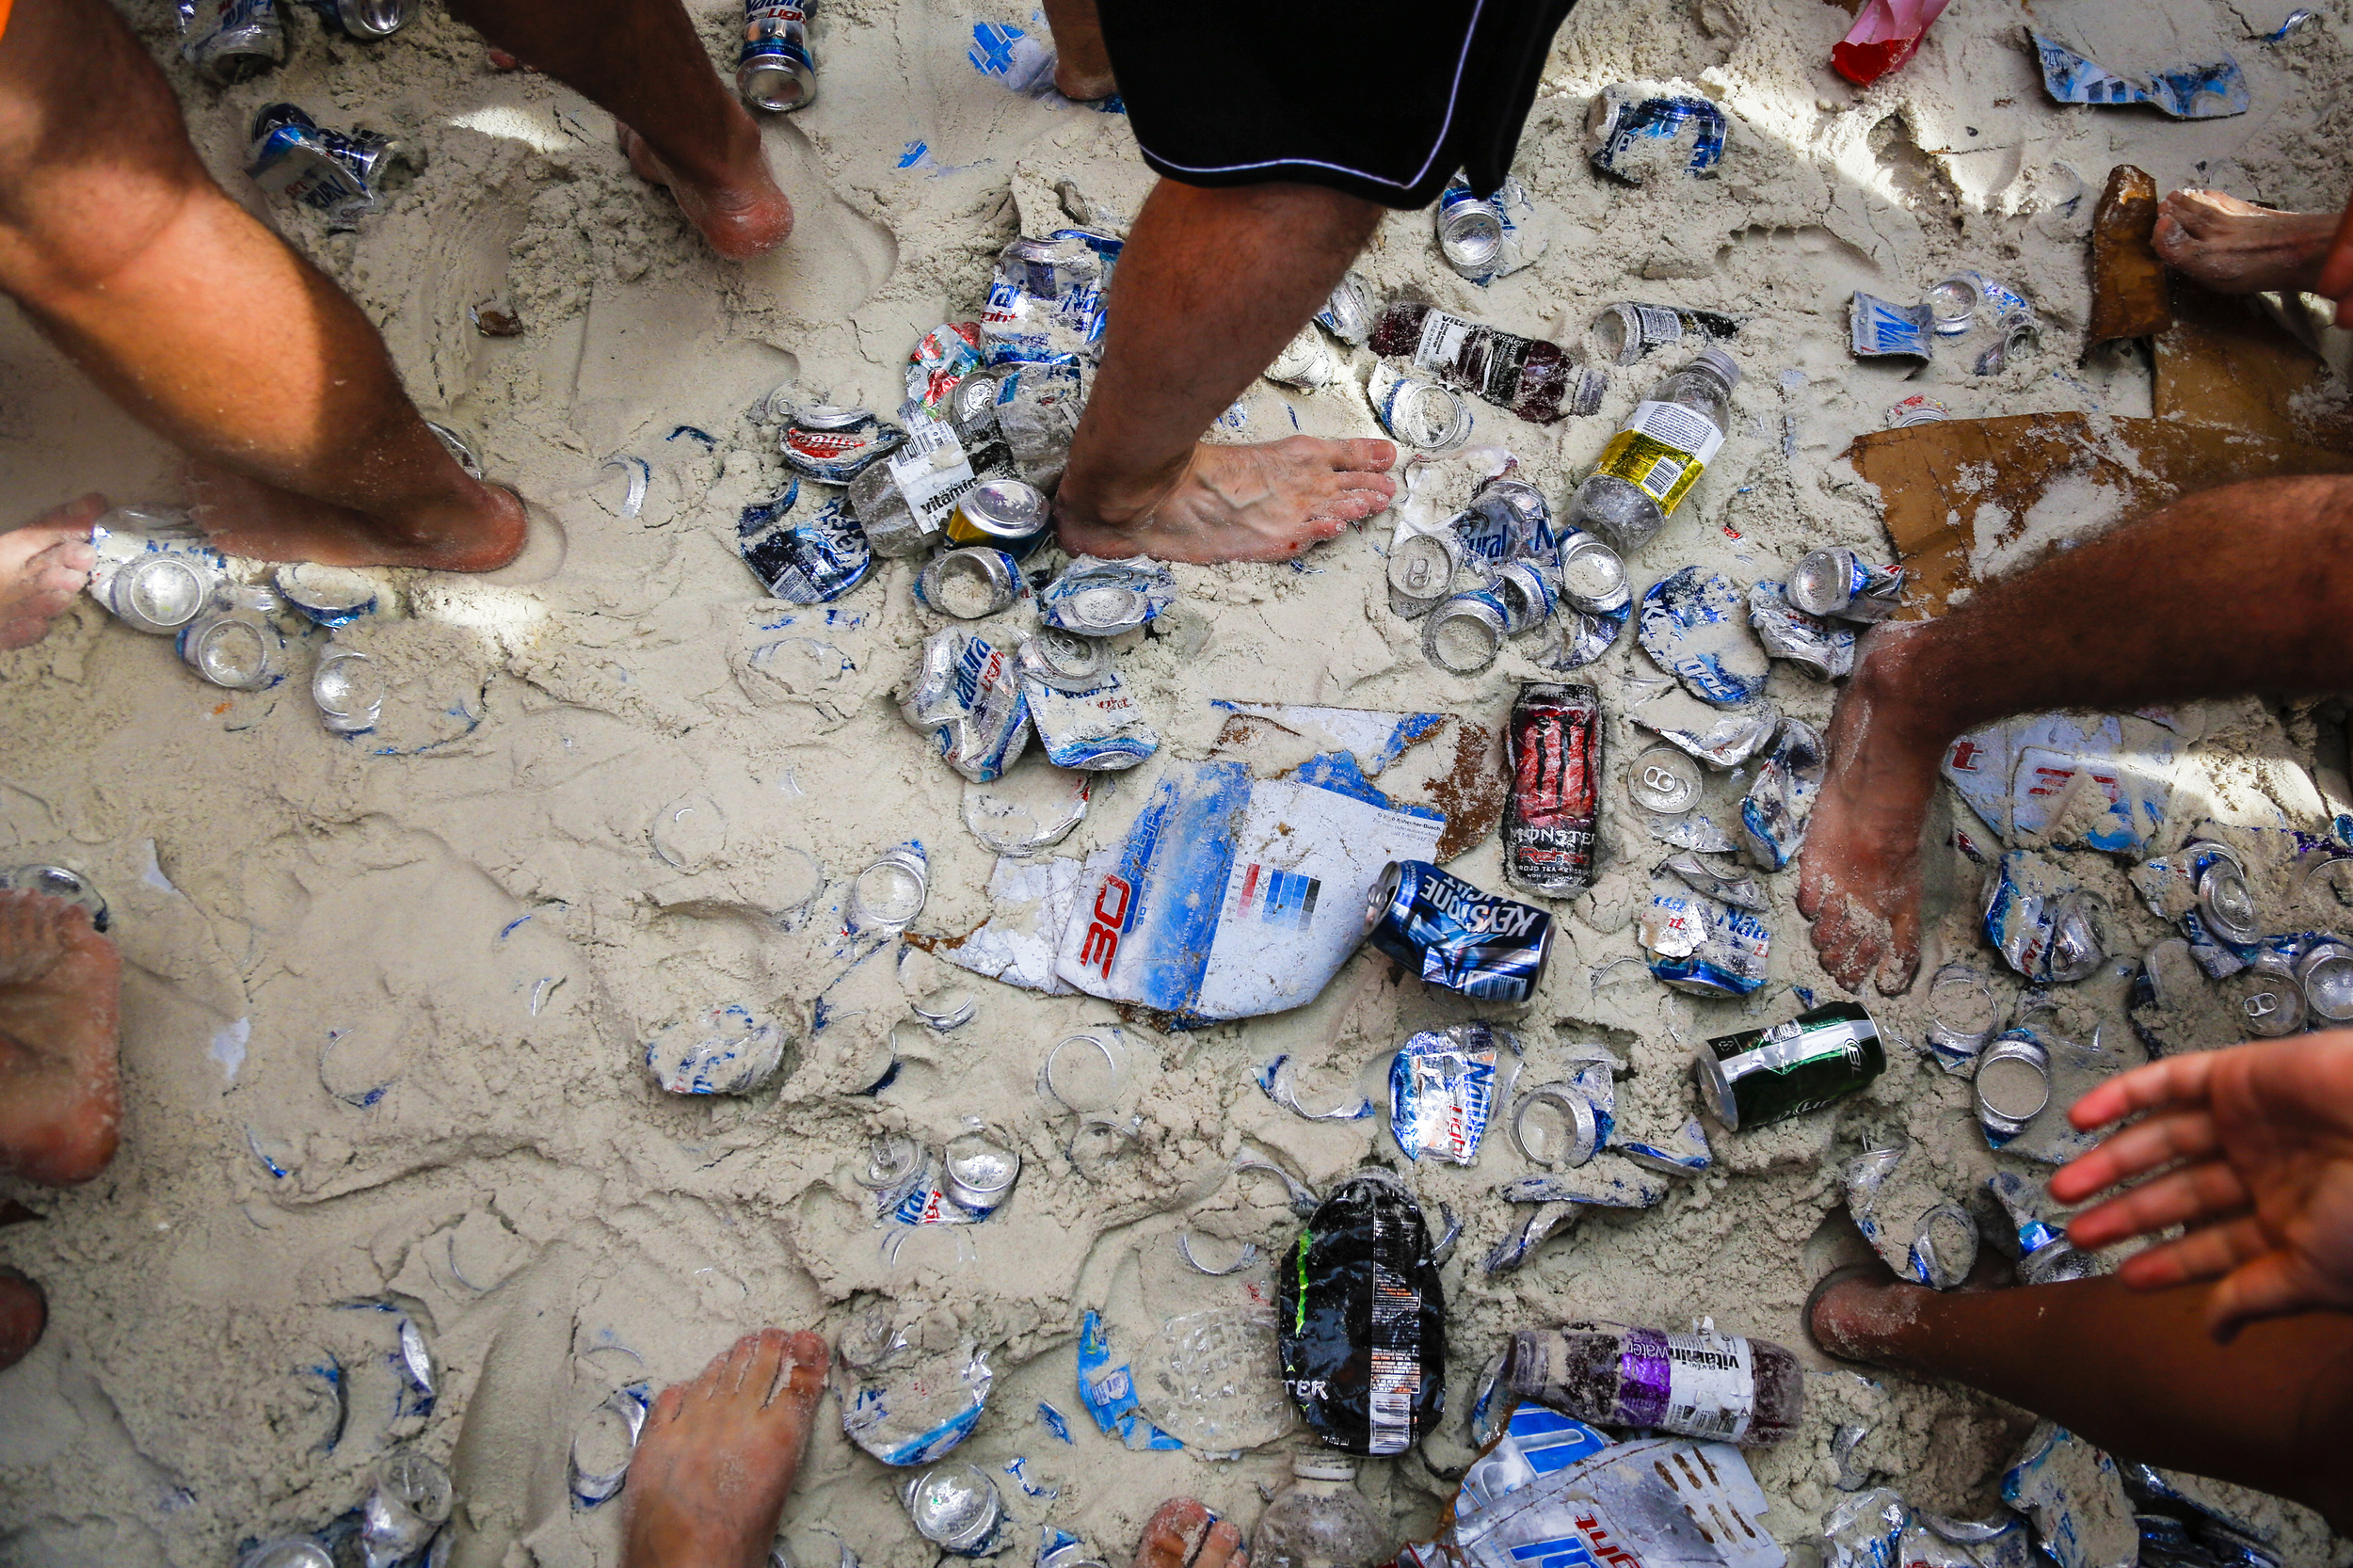 Spring breakers walk and dance on various beverage cans that have been left on the beach as students from around the country congregate to party and have a good time in Panama City Beach, Florida.